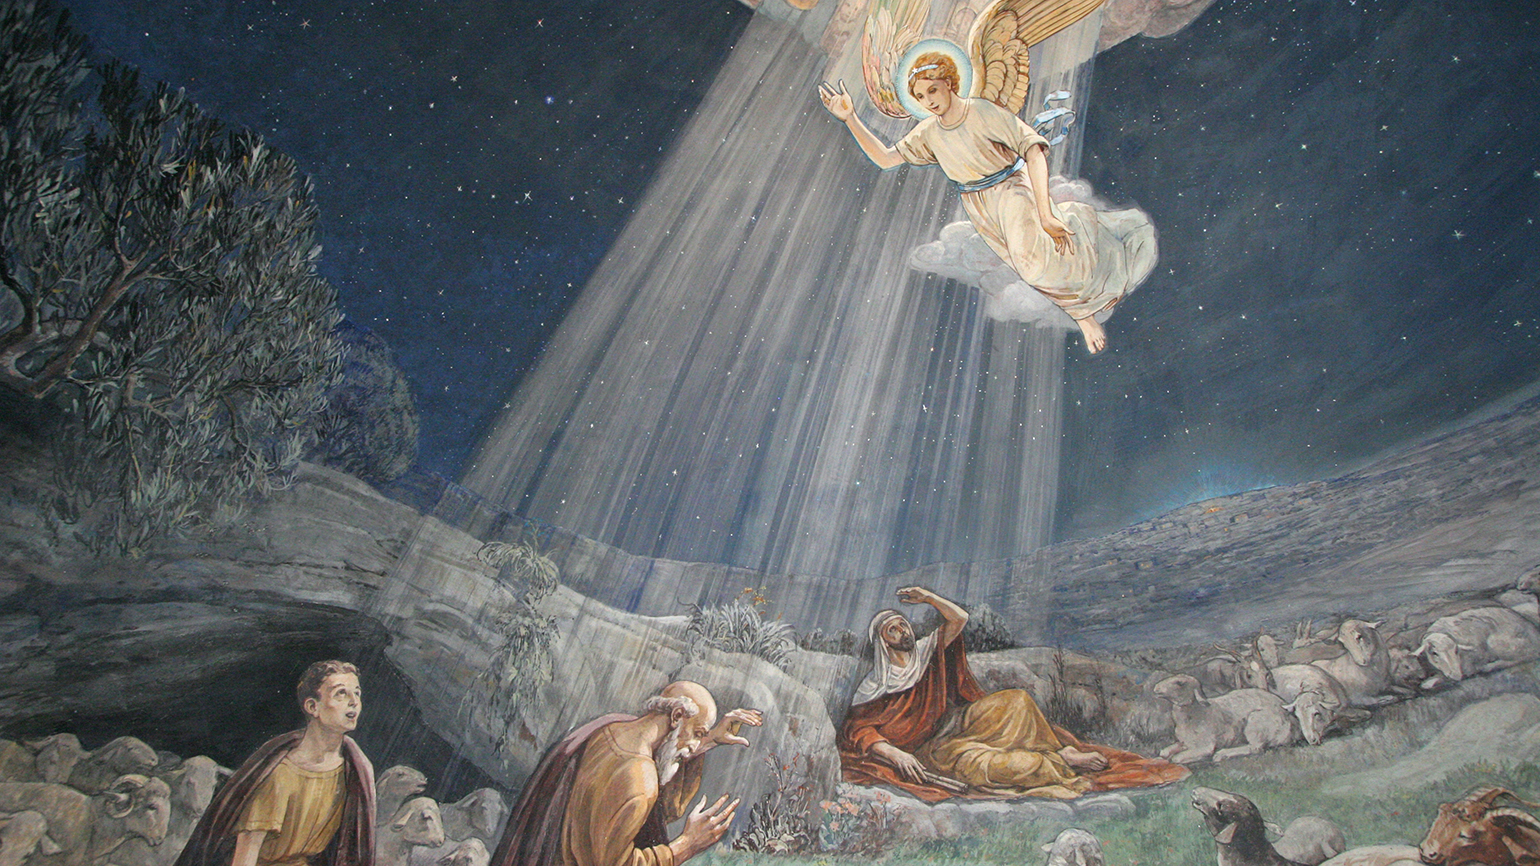 An angel brings new of Christs birth to shepherds in the fields